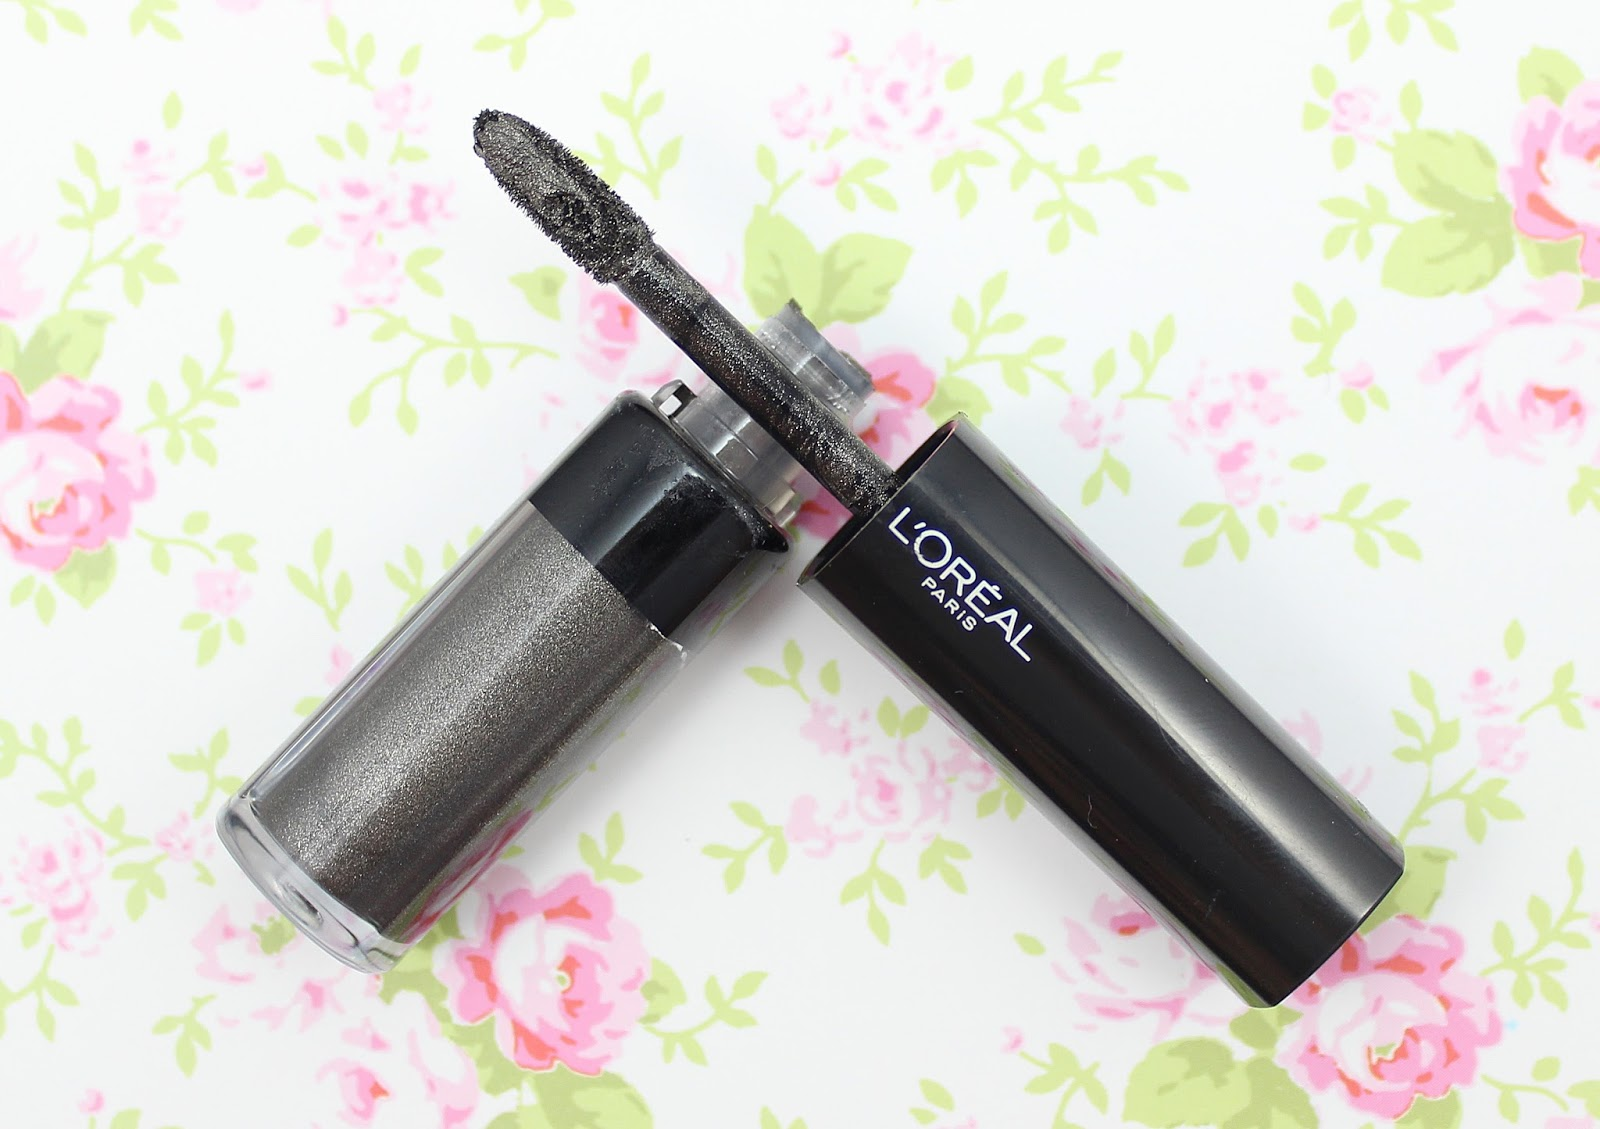 L'Oreal Infallible Eye Paint Iconic Silver